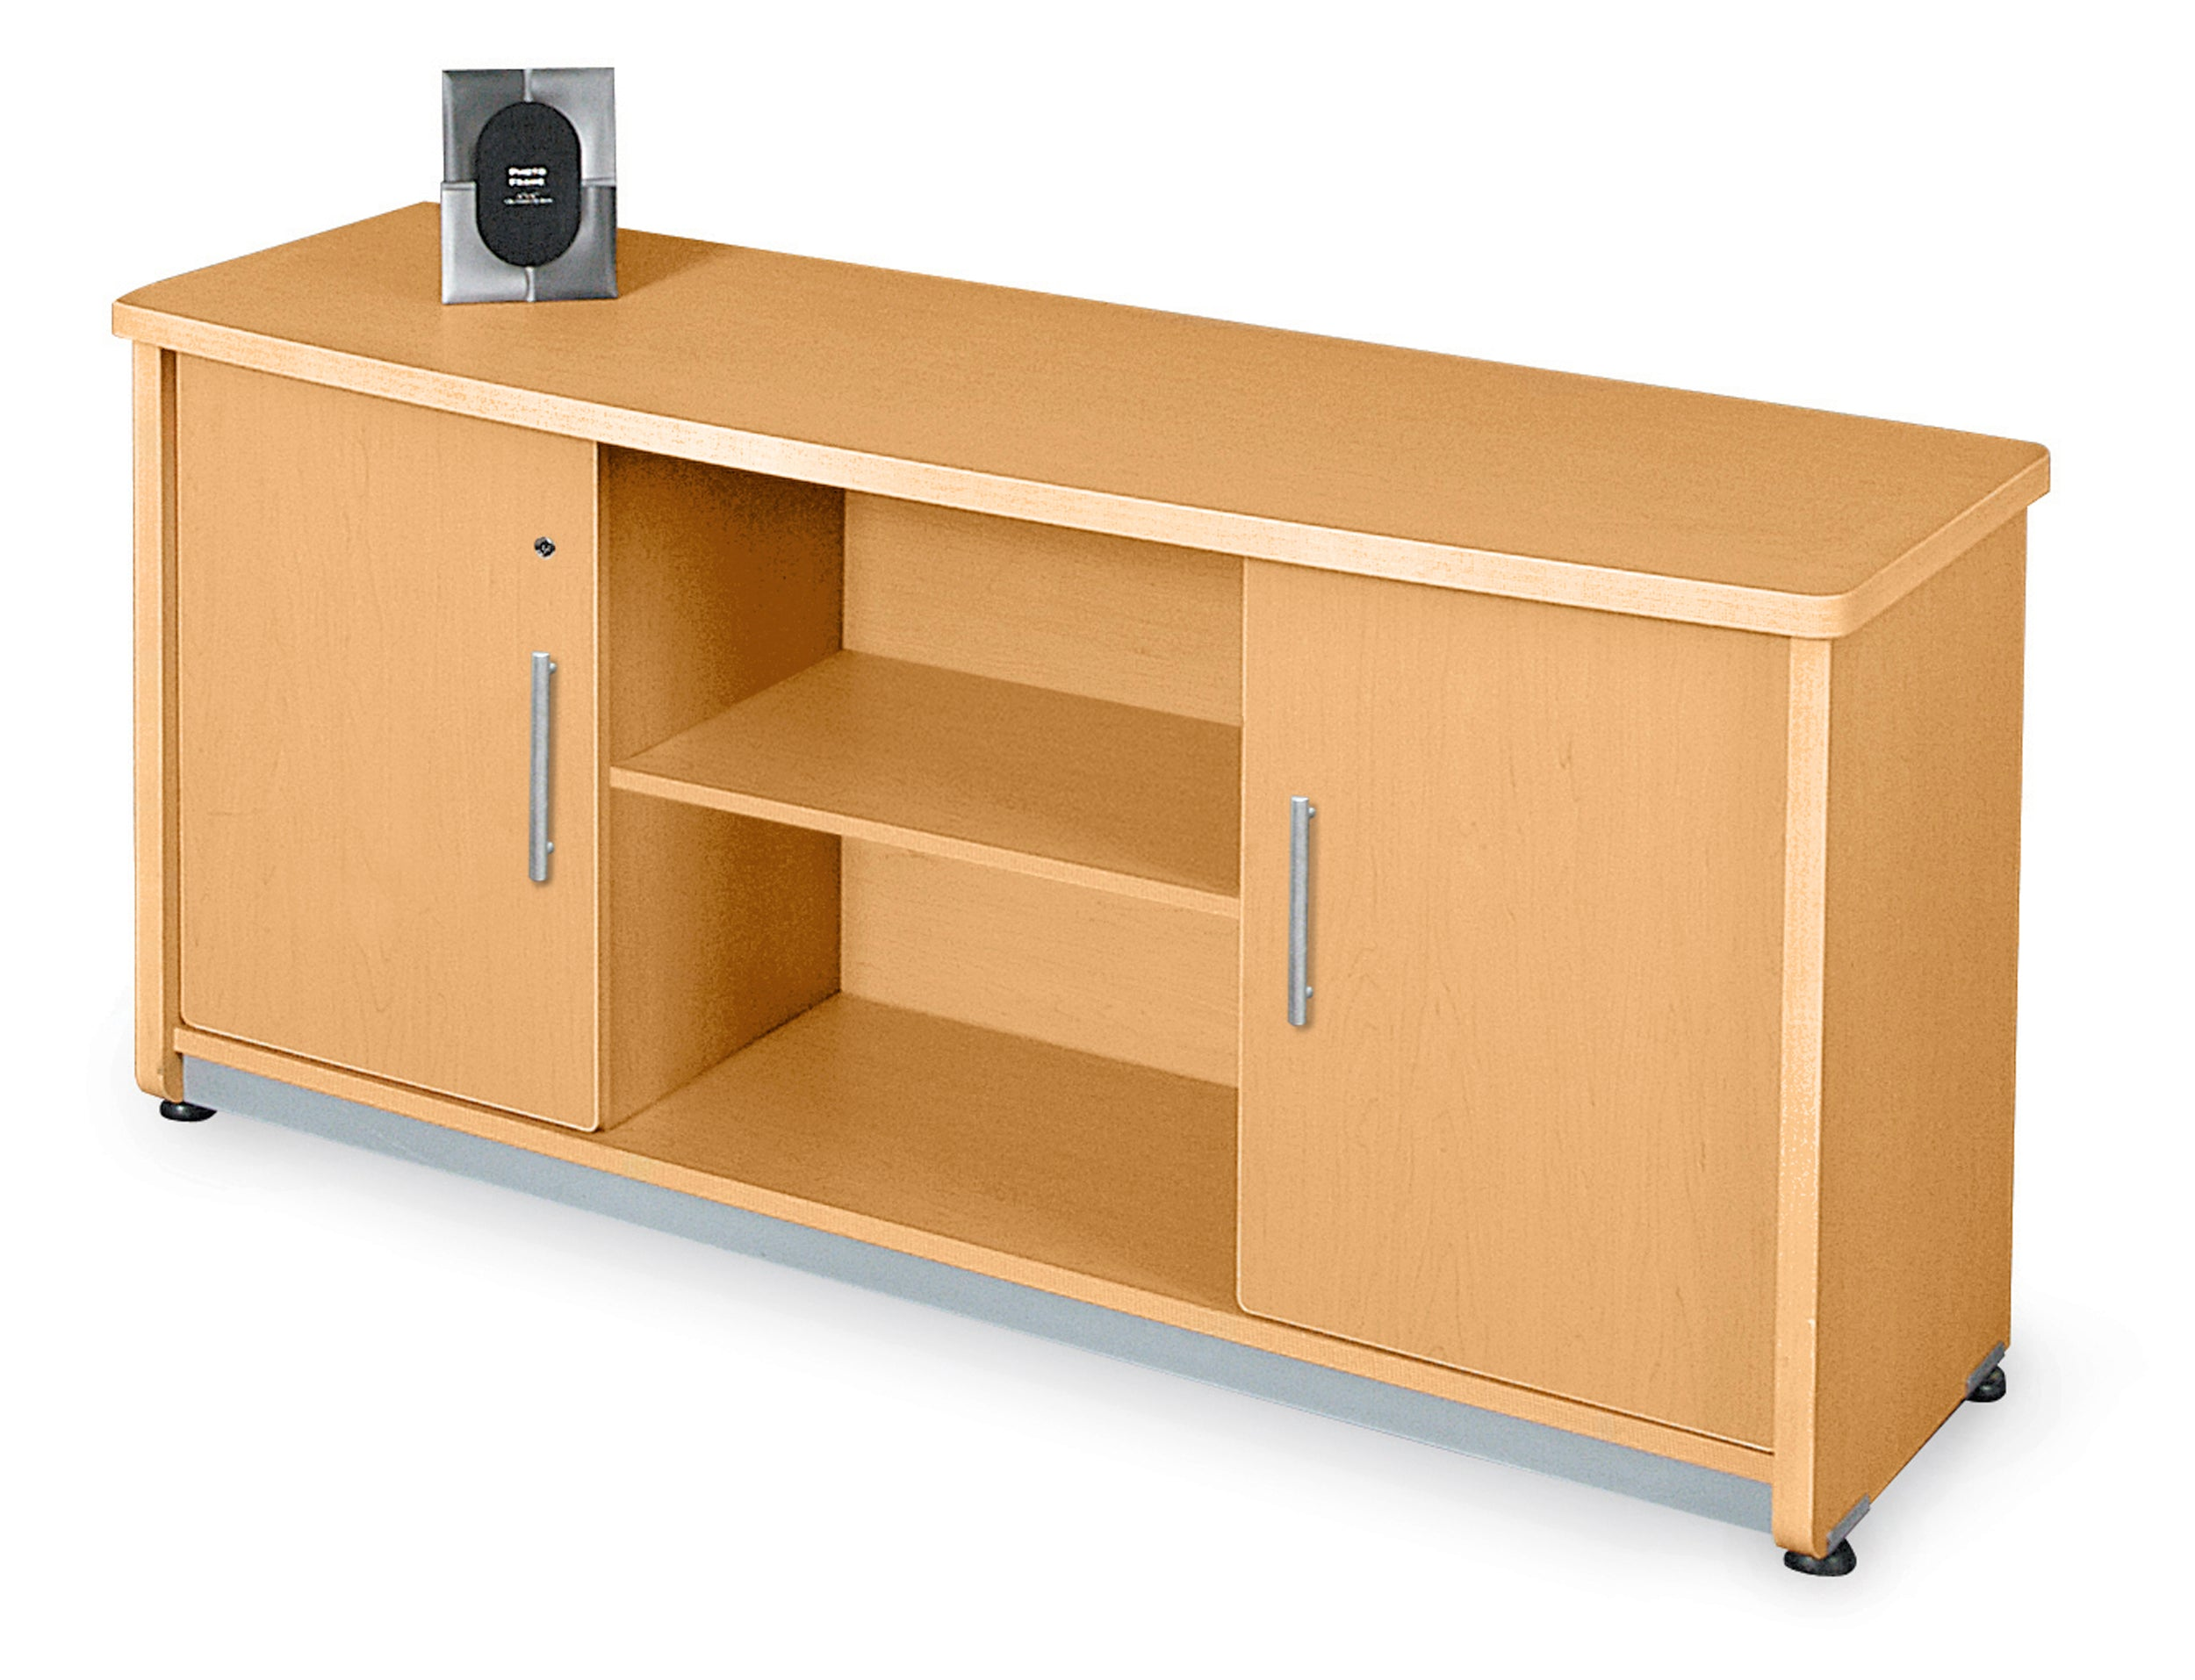 Ofminc Model 55503 Milano Series 2-Door Executive Office Credenza